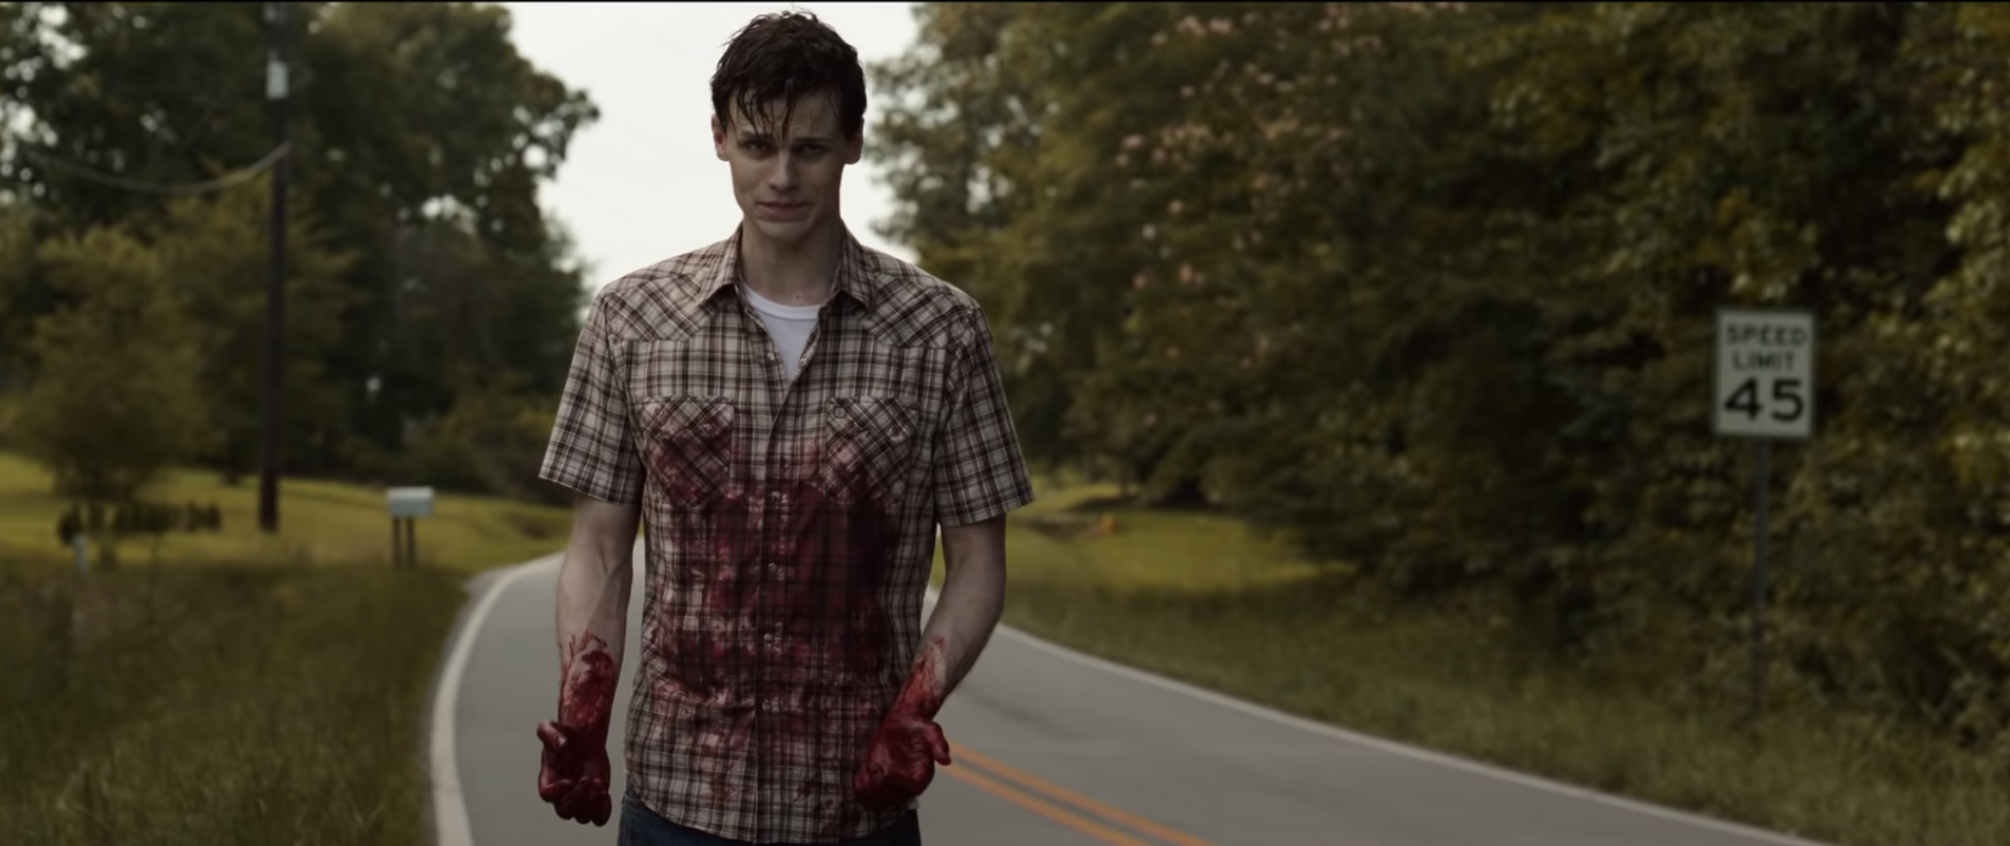 Arne walking down a country road covered in blood